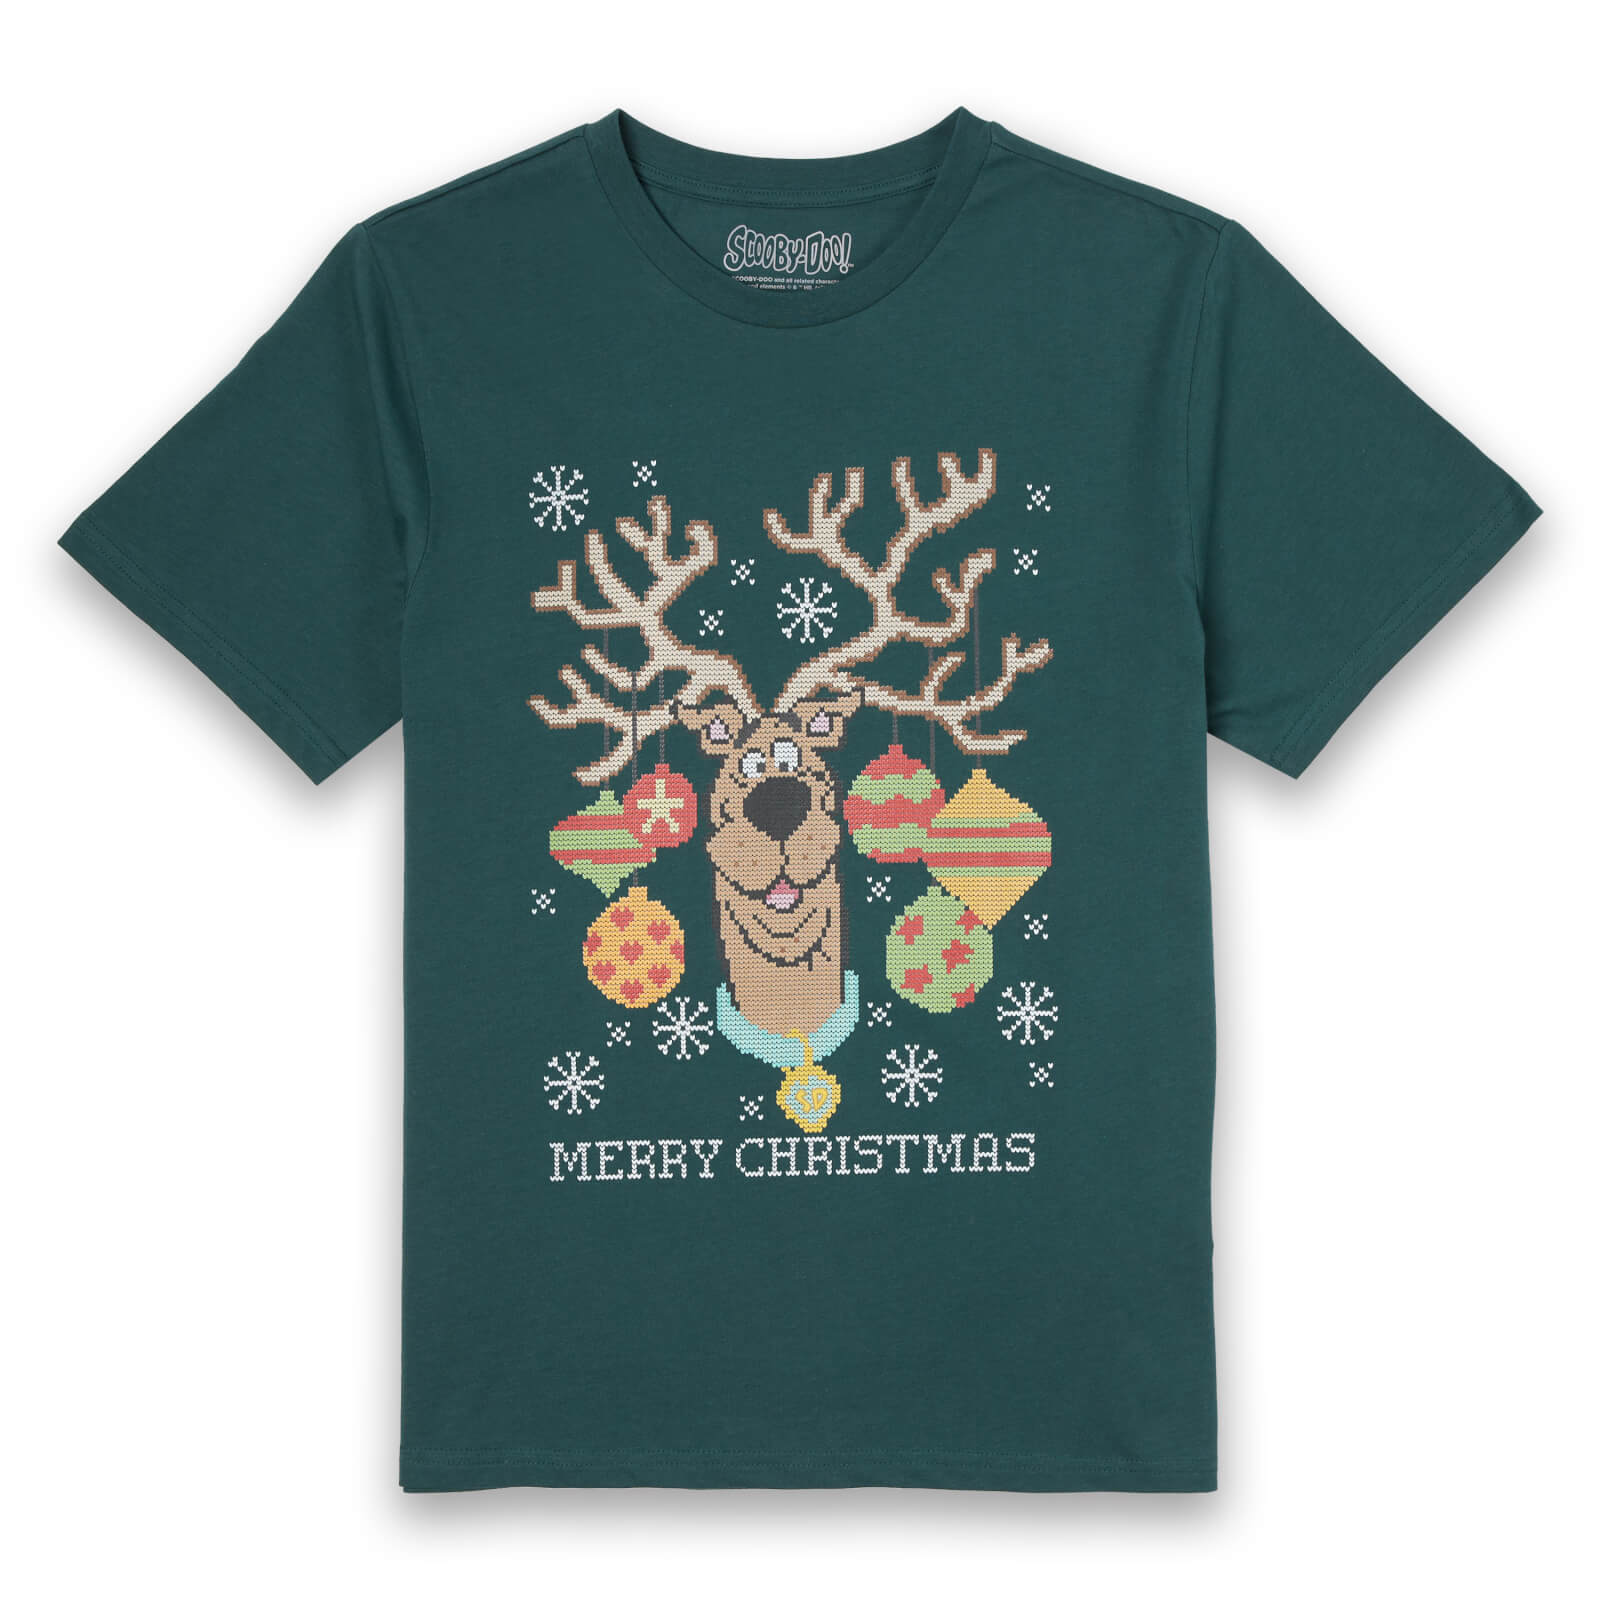 Scooby Doo Men's Christmas T-Shirt - Forest Green - XXL - Forest Green de Scooby Doo